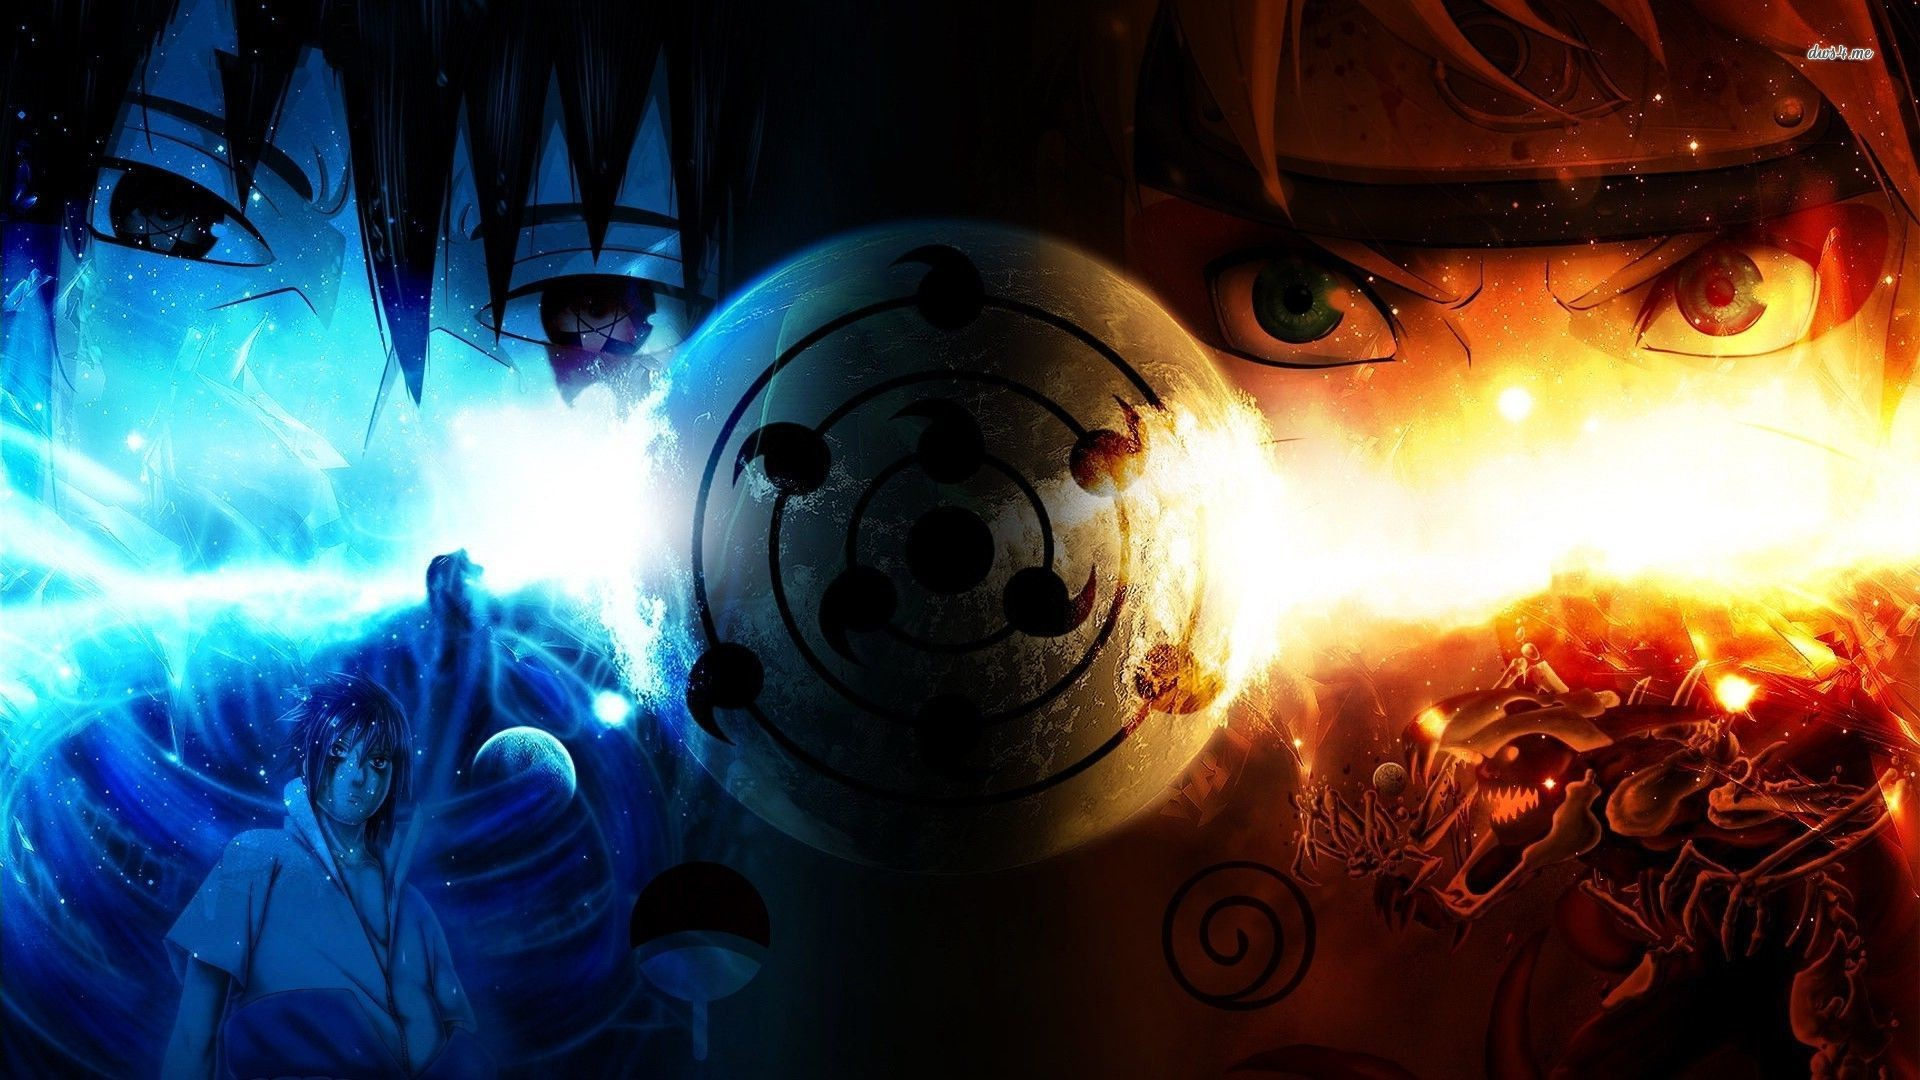 Naruto HD Wallpapers 2015(High Quality) - All HD Wallpapers |Naruto High Quality Wallpaper